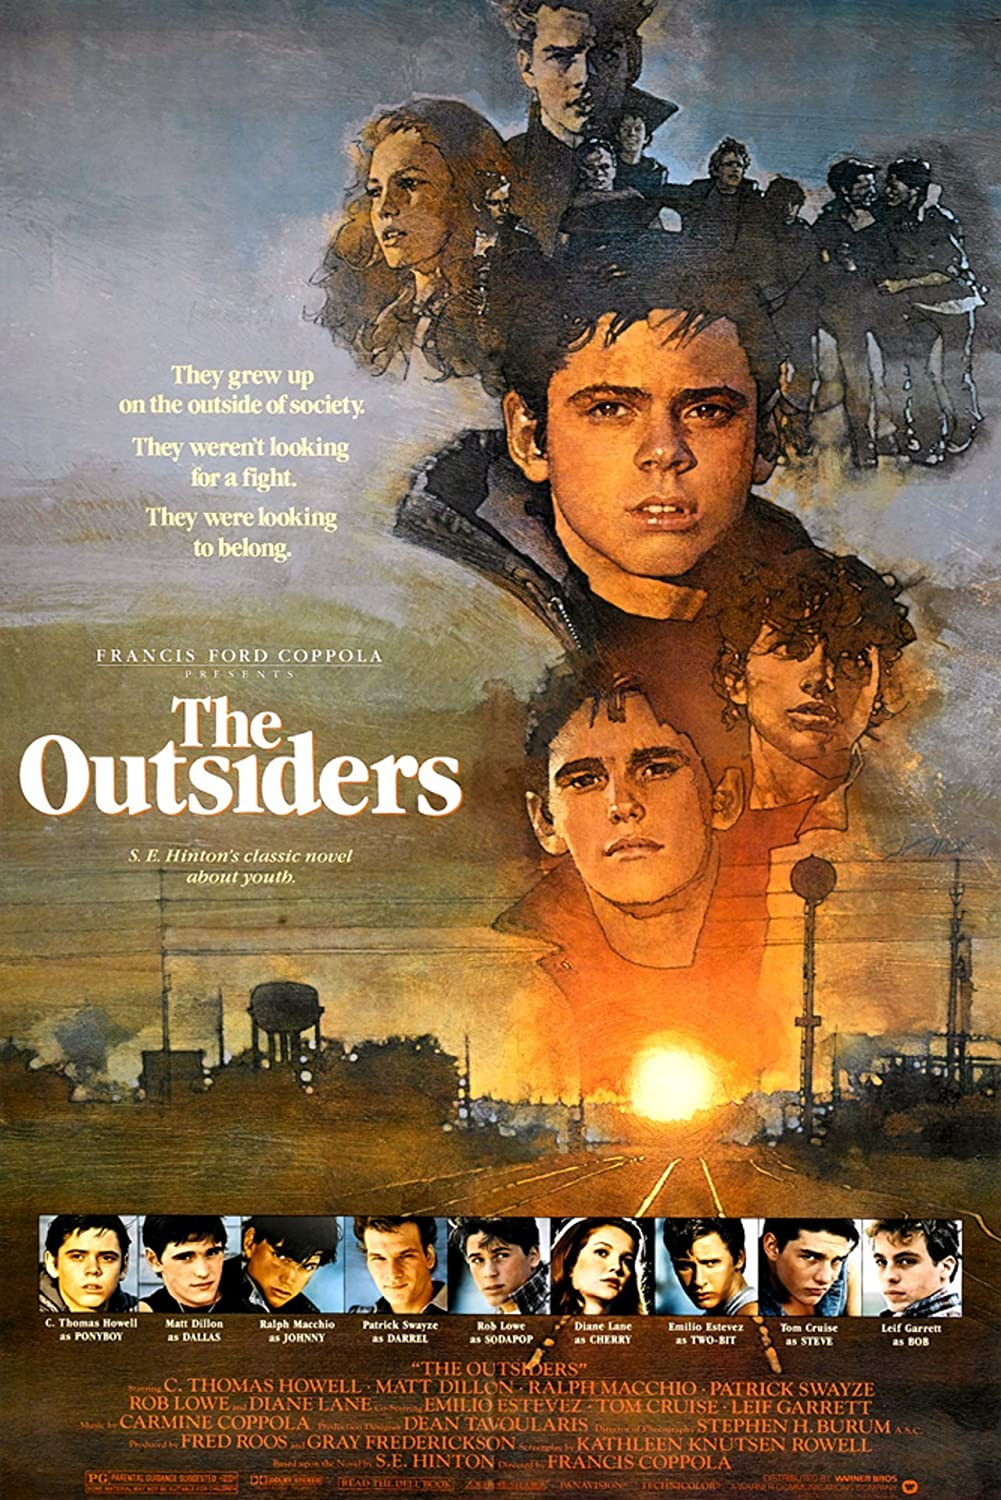 The Outsiders Movie Poster 11x17 inches Style B